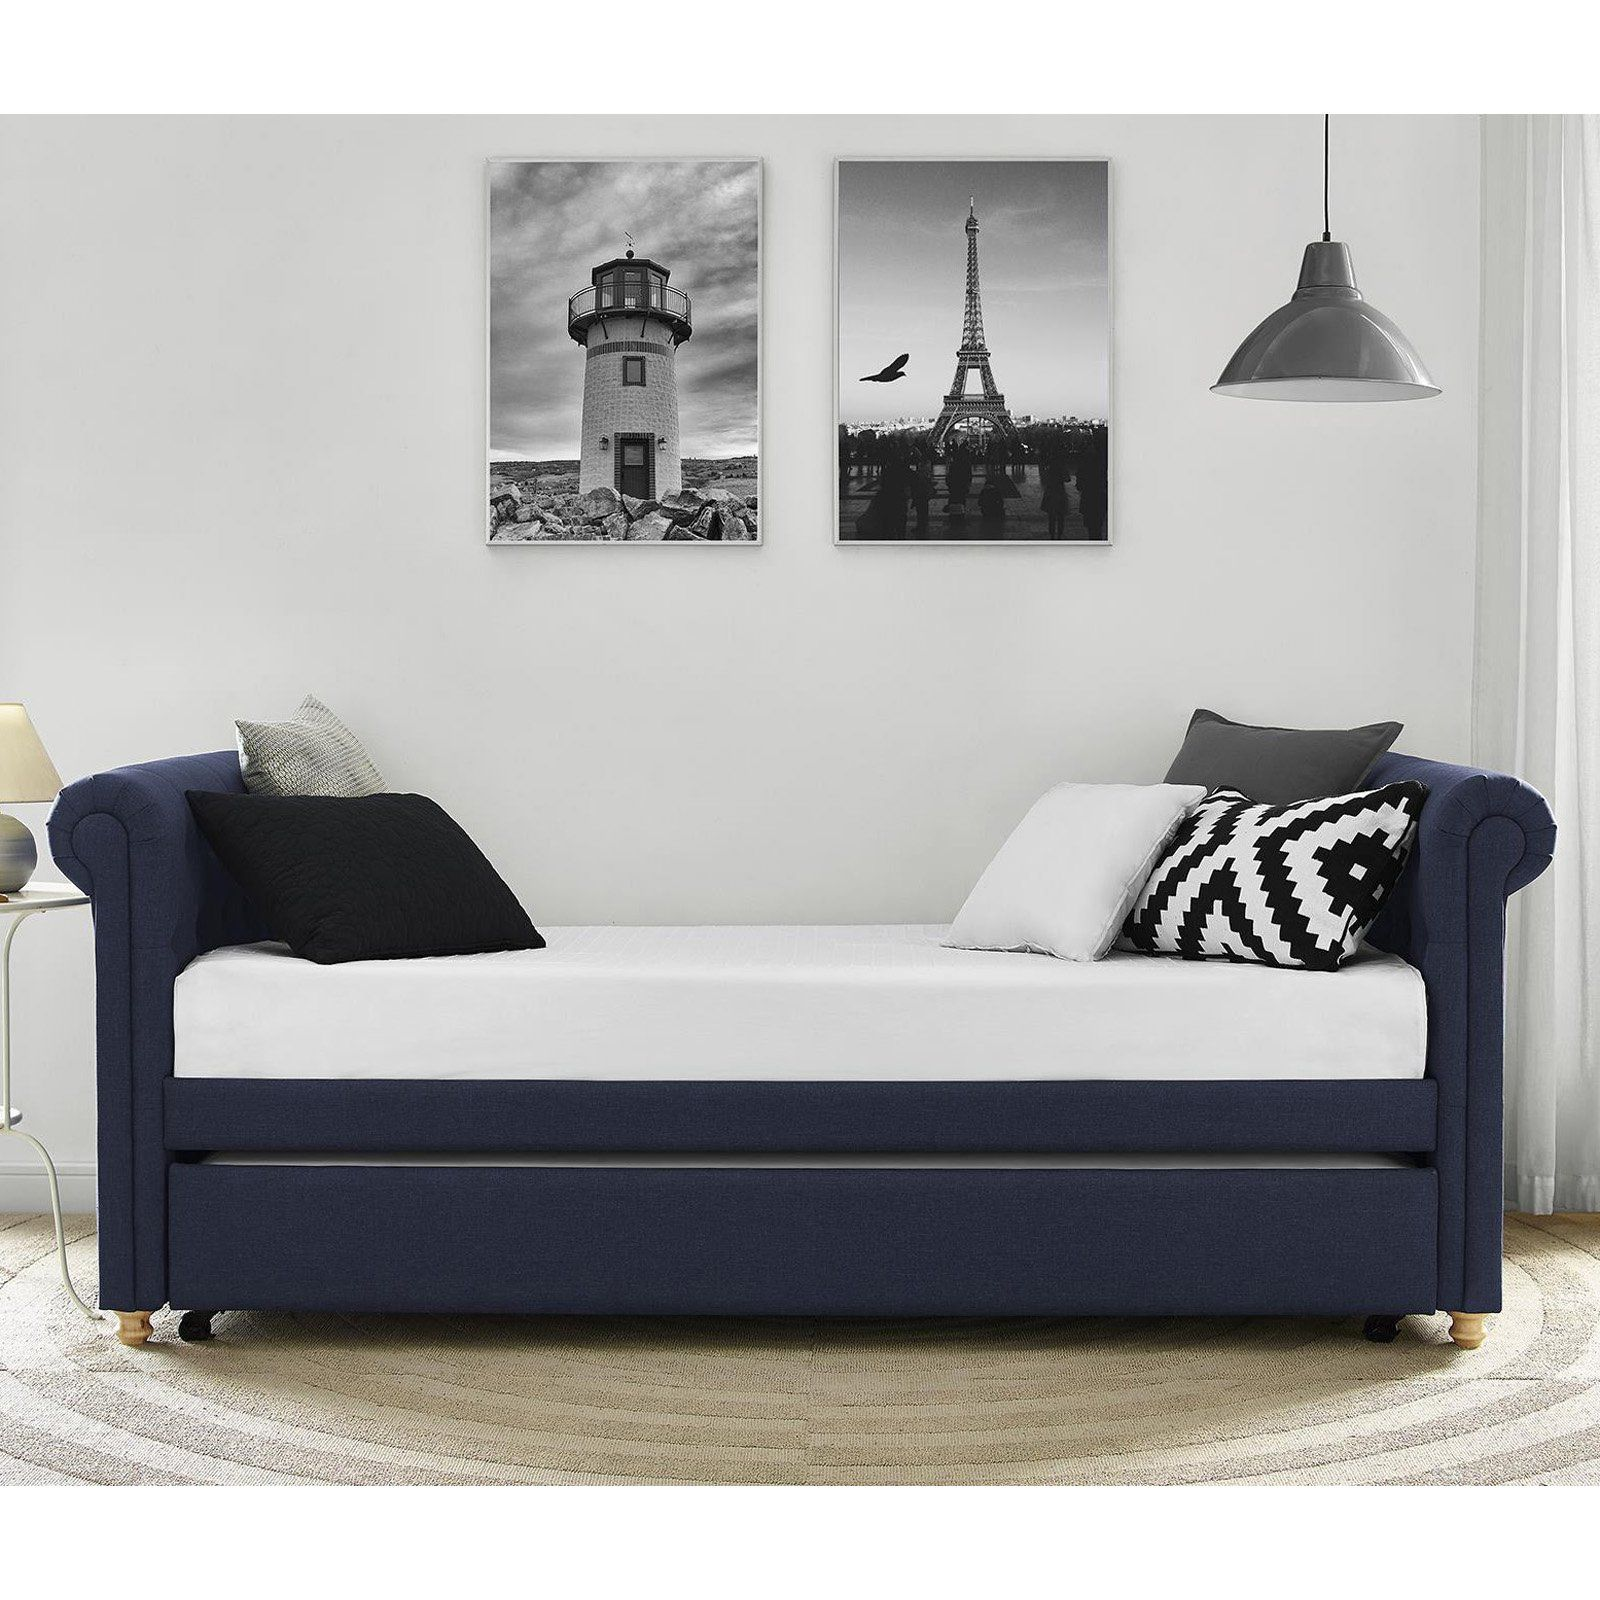 Dhp Sophia Upholstered Daybed With Trundle Navy In 2020 Daybed With Trundle Upholstered Daybed Daybed